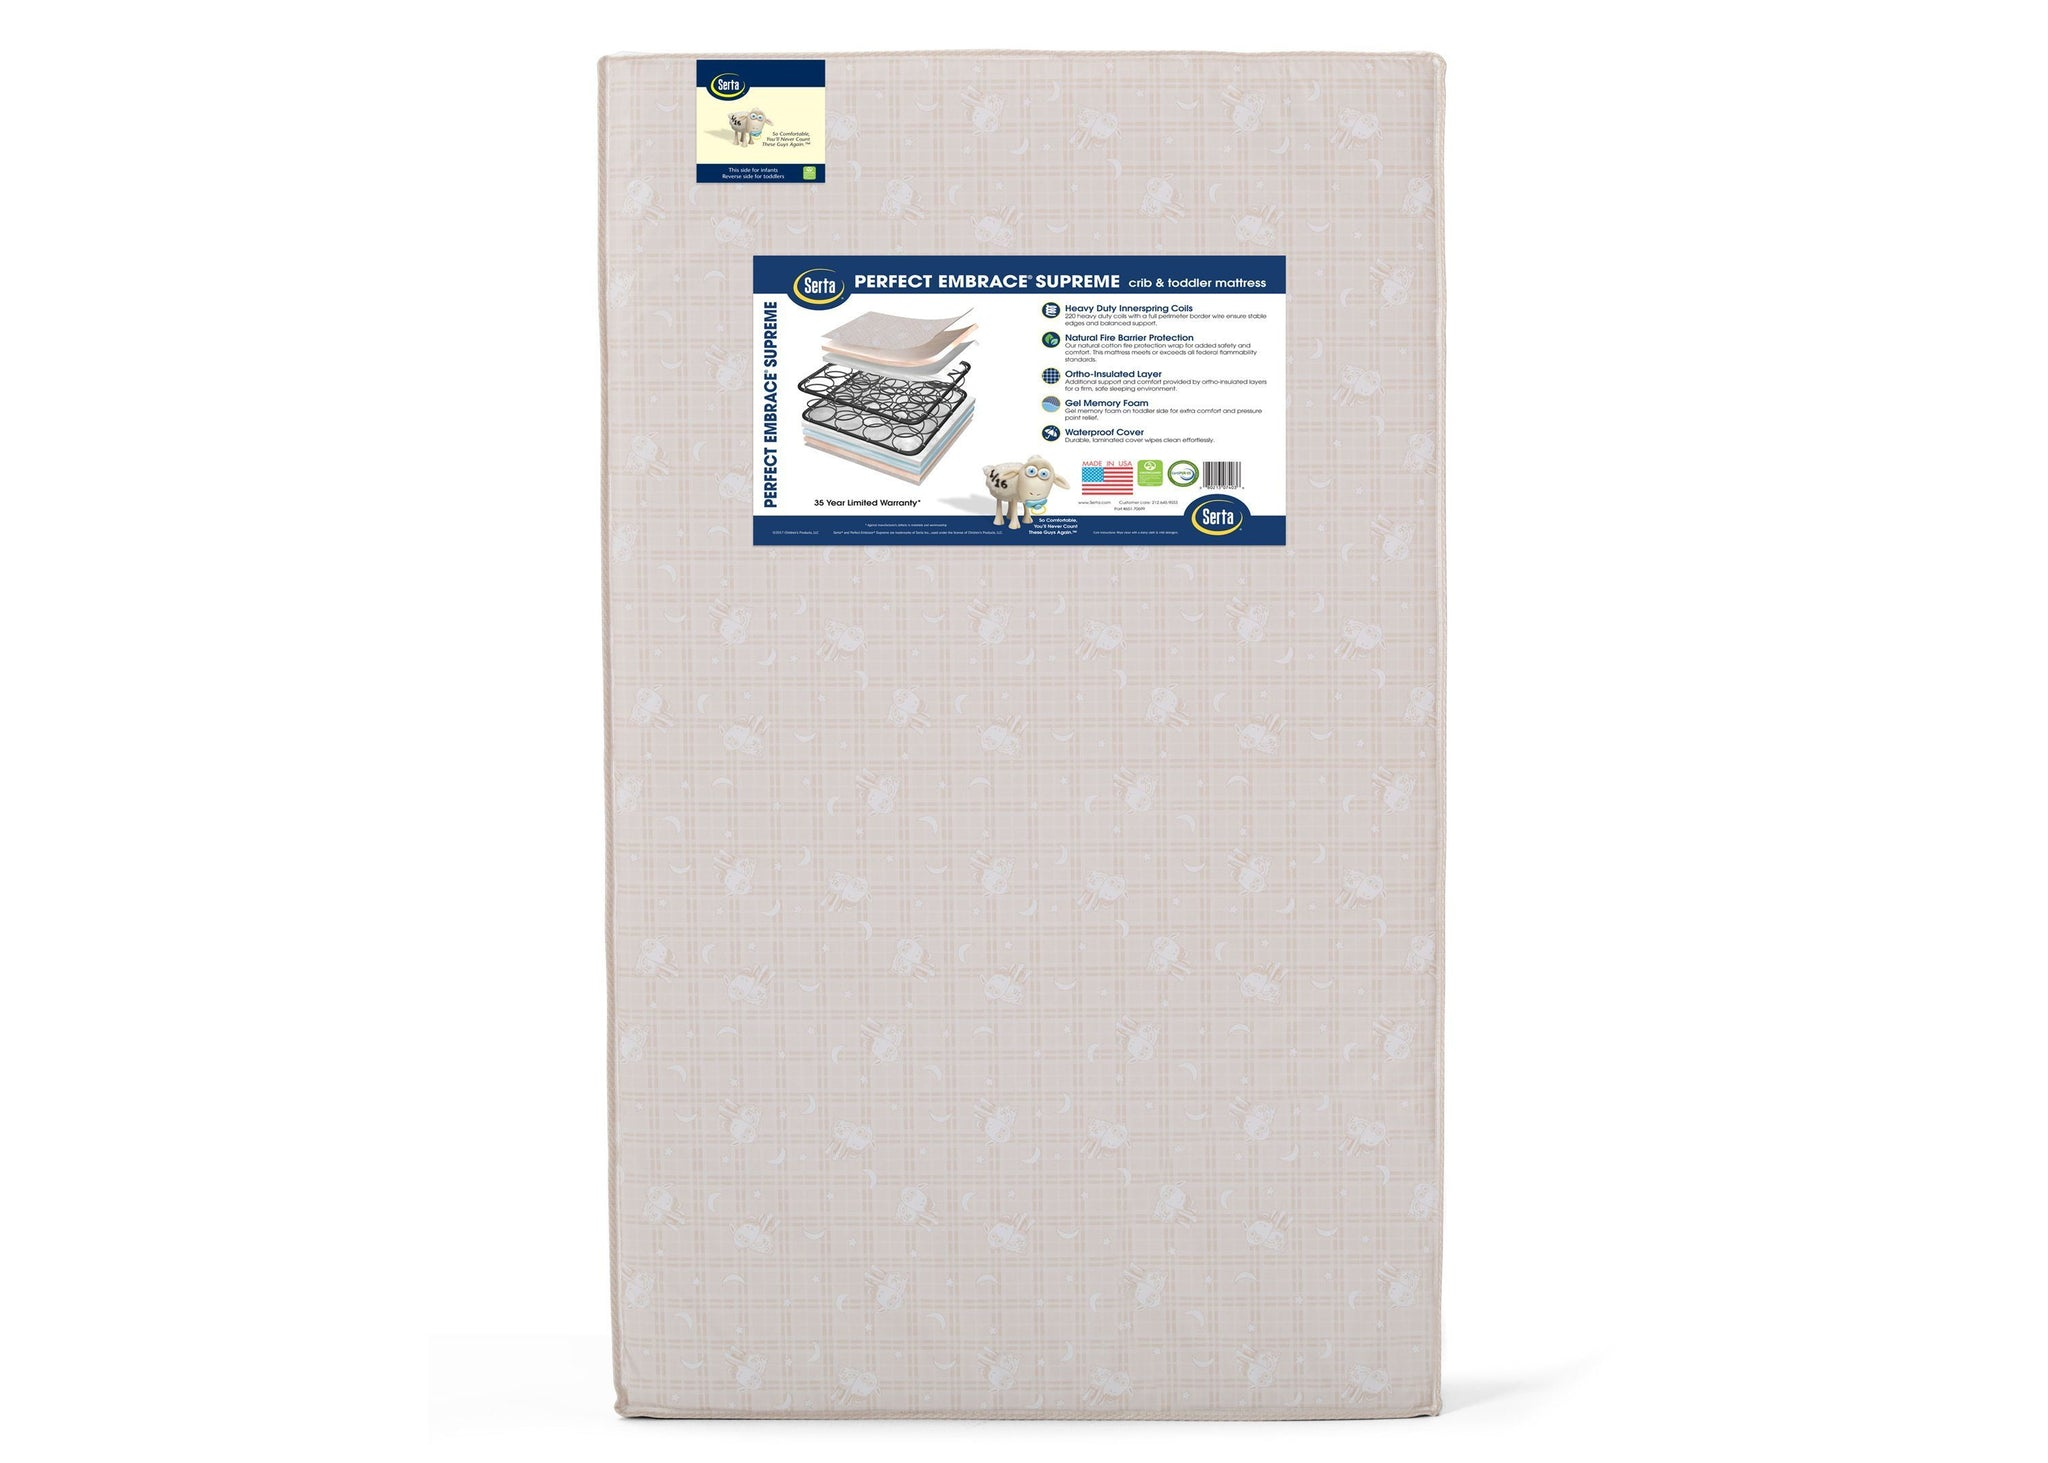 Serta Perfect Embrace Supreme 2 Stage Crib and Toddler Mattress (A46111-1117), a3a No Color (NO)